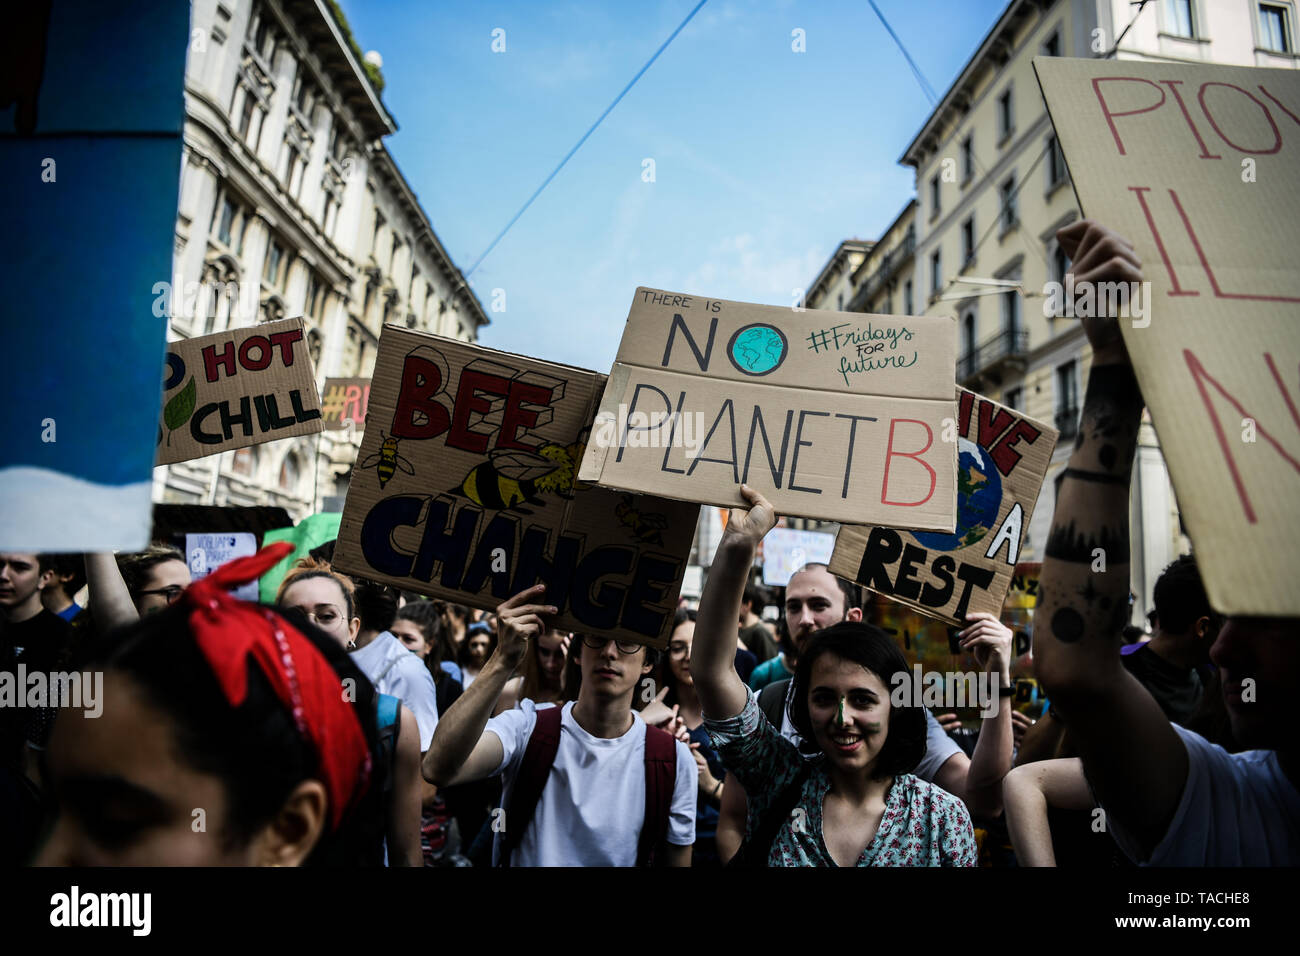 Milan, Italy. 24th May, 2019. Students during the second FridaysForFuture rally to demand action to prevent further global warming and climate change. Credit: Piero Cruciatti/Alamy Live News - Stock Image